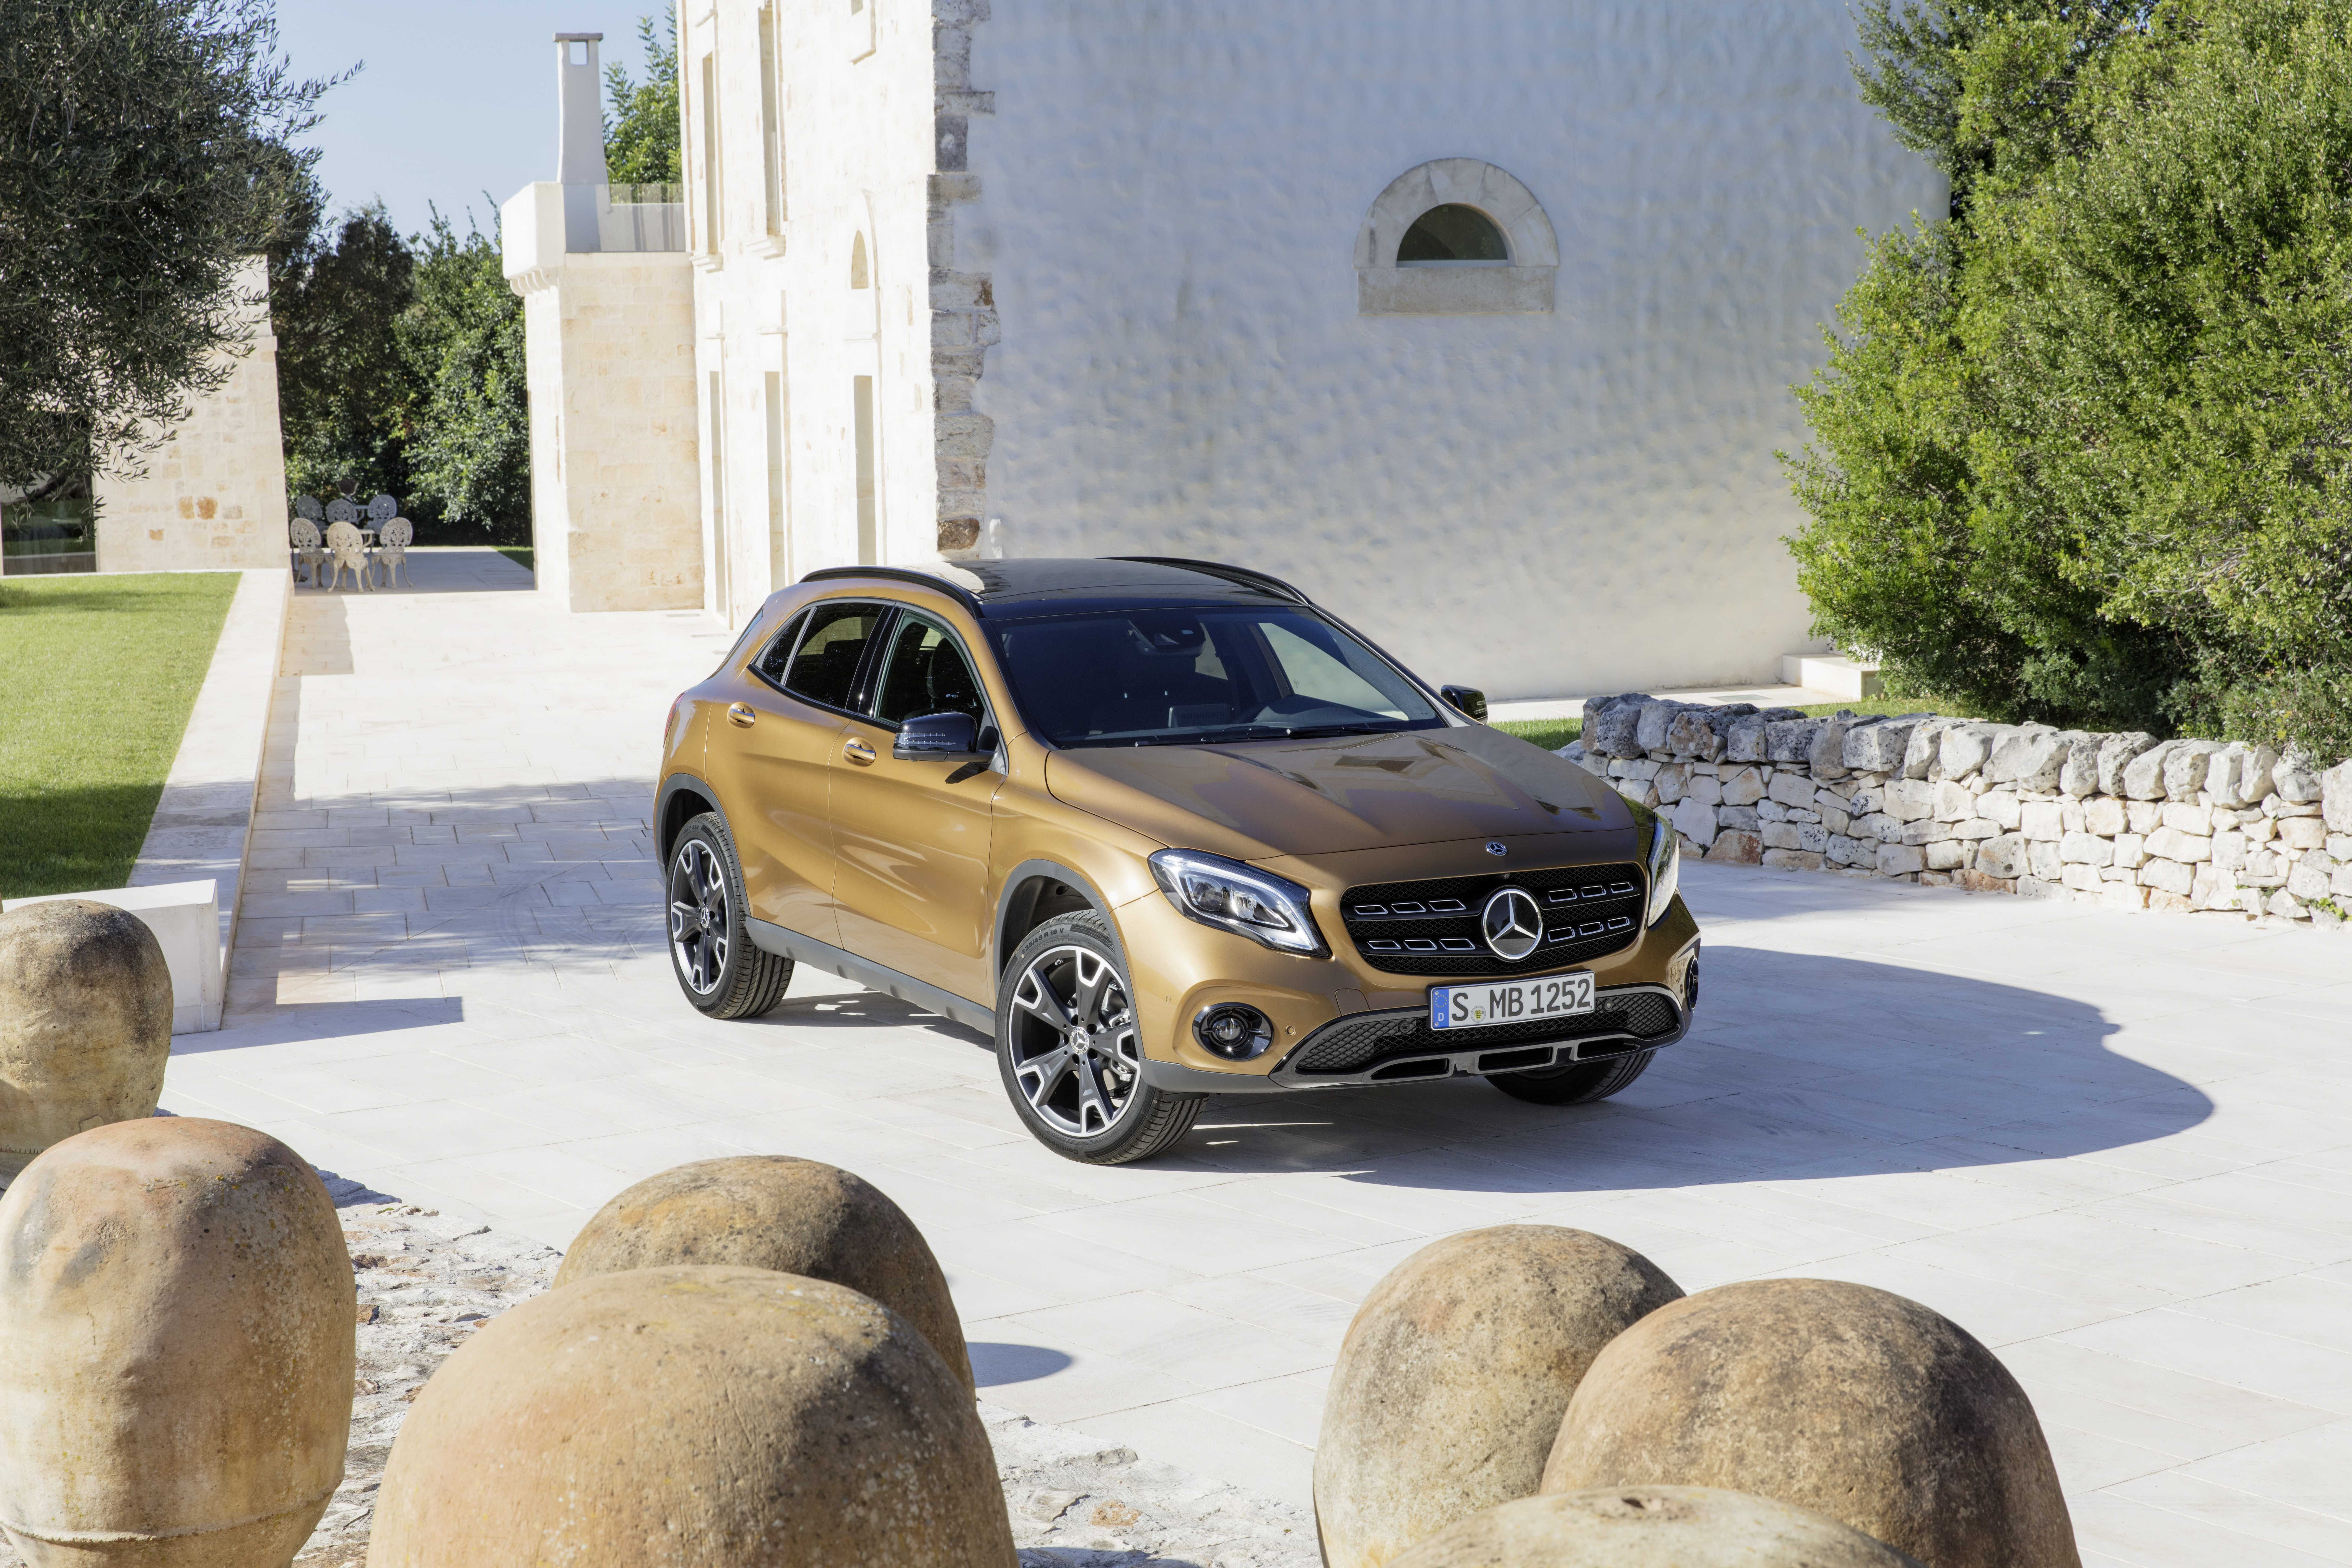 cars suv horsepower benz amg shows mercedes glc money story sale for